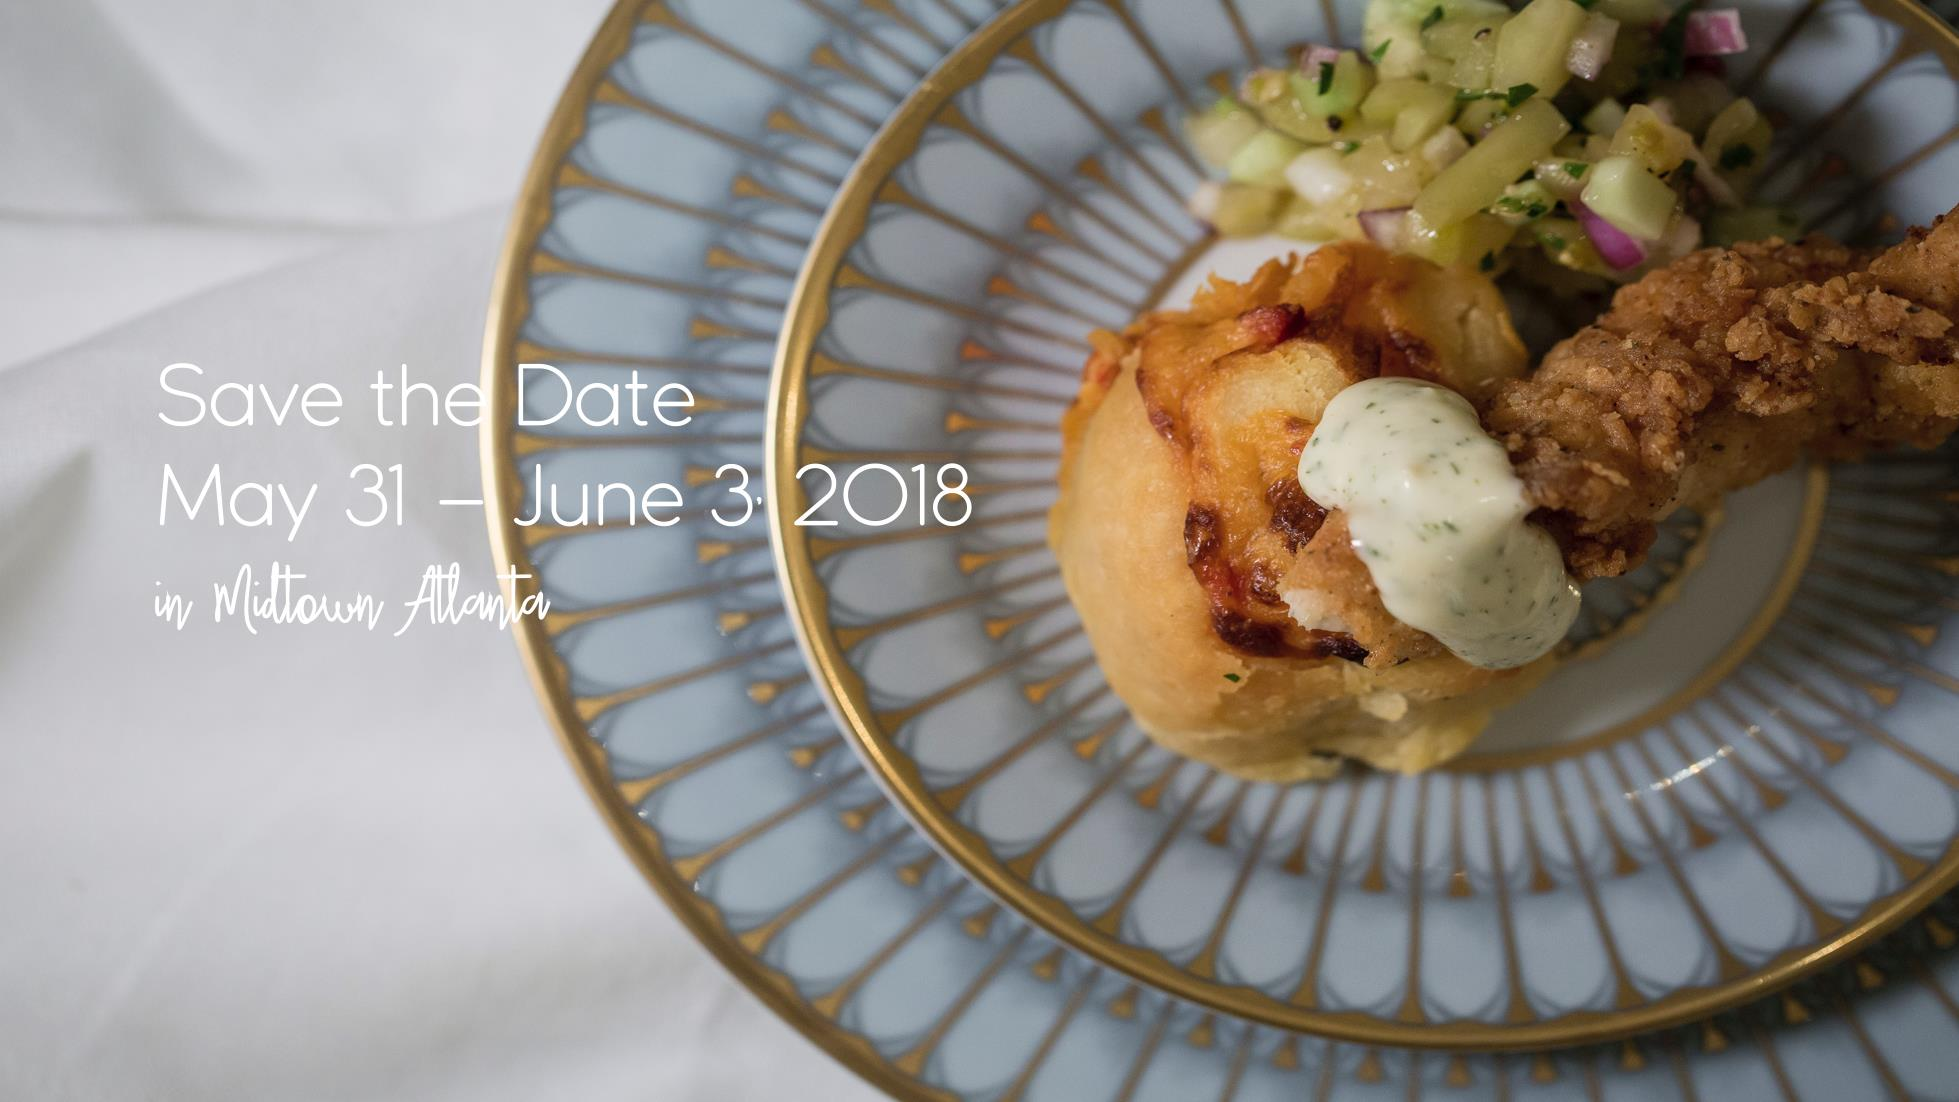 Savor the south at atlanta food wine festival thu may 31 sun the annual atlanta food wine festival returns to midtown atlanta for its eighth year from may 31 june 3 more than 150 chefs sommeliers mixologists forumfinder Gallery